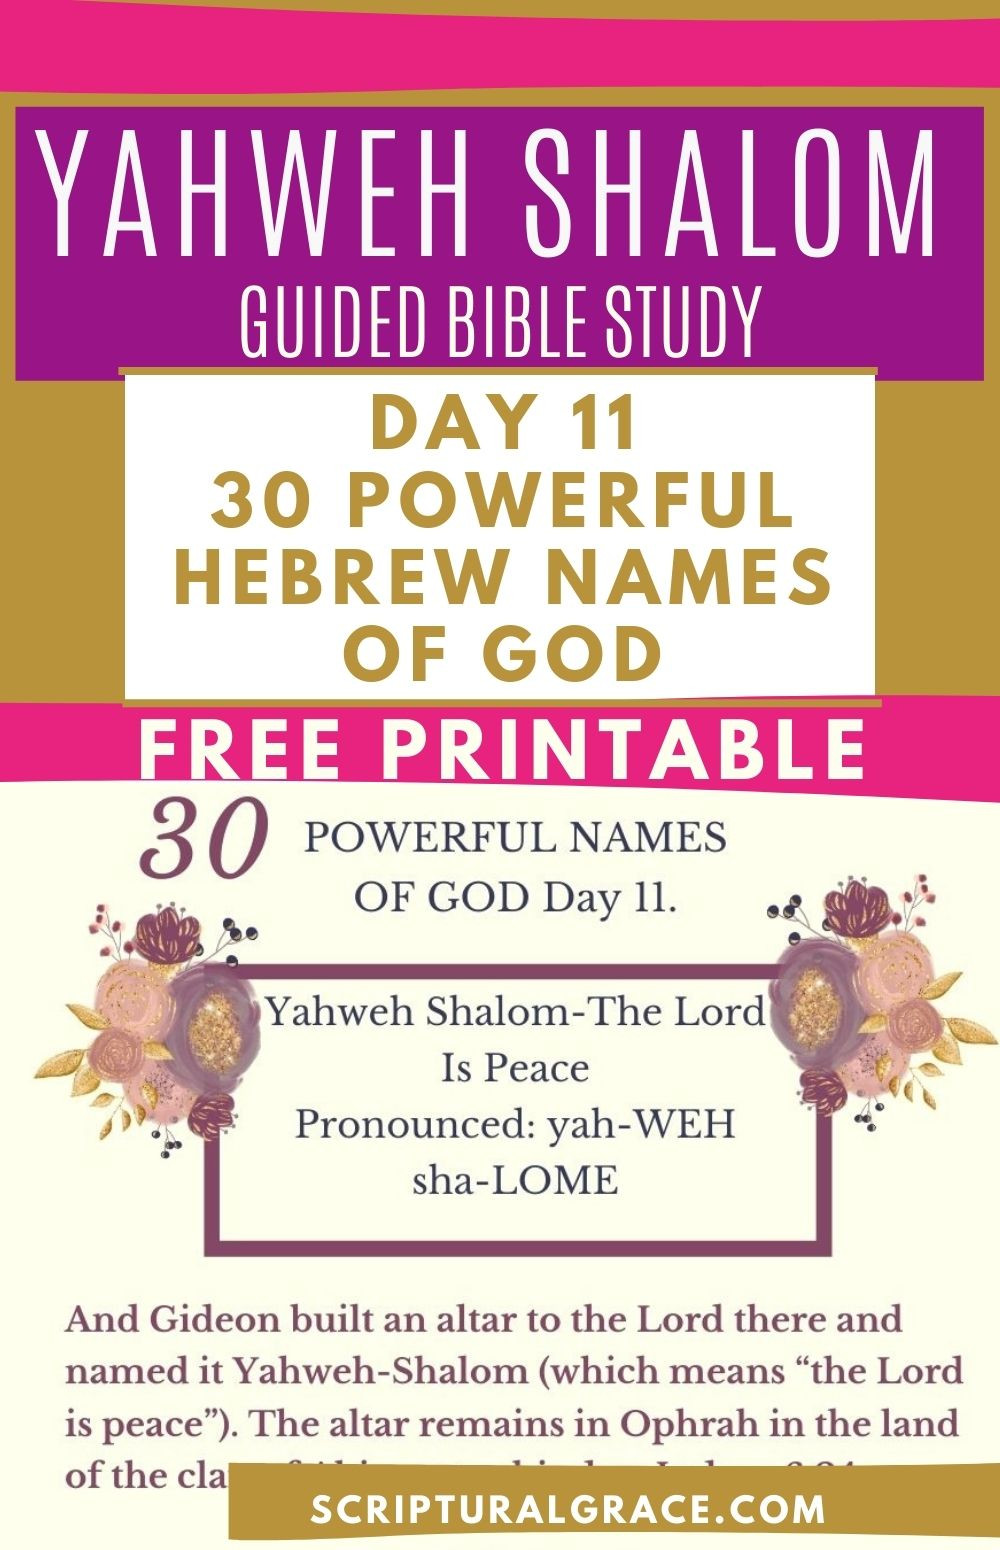 Yahweh Shalom guided bible study names of god and free printable